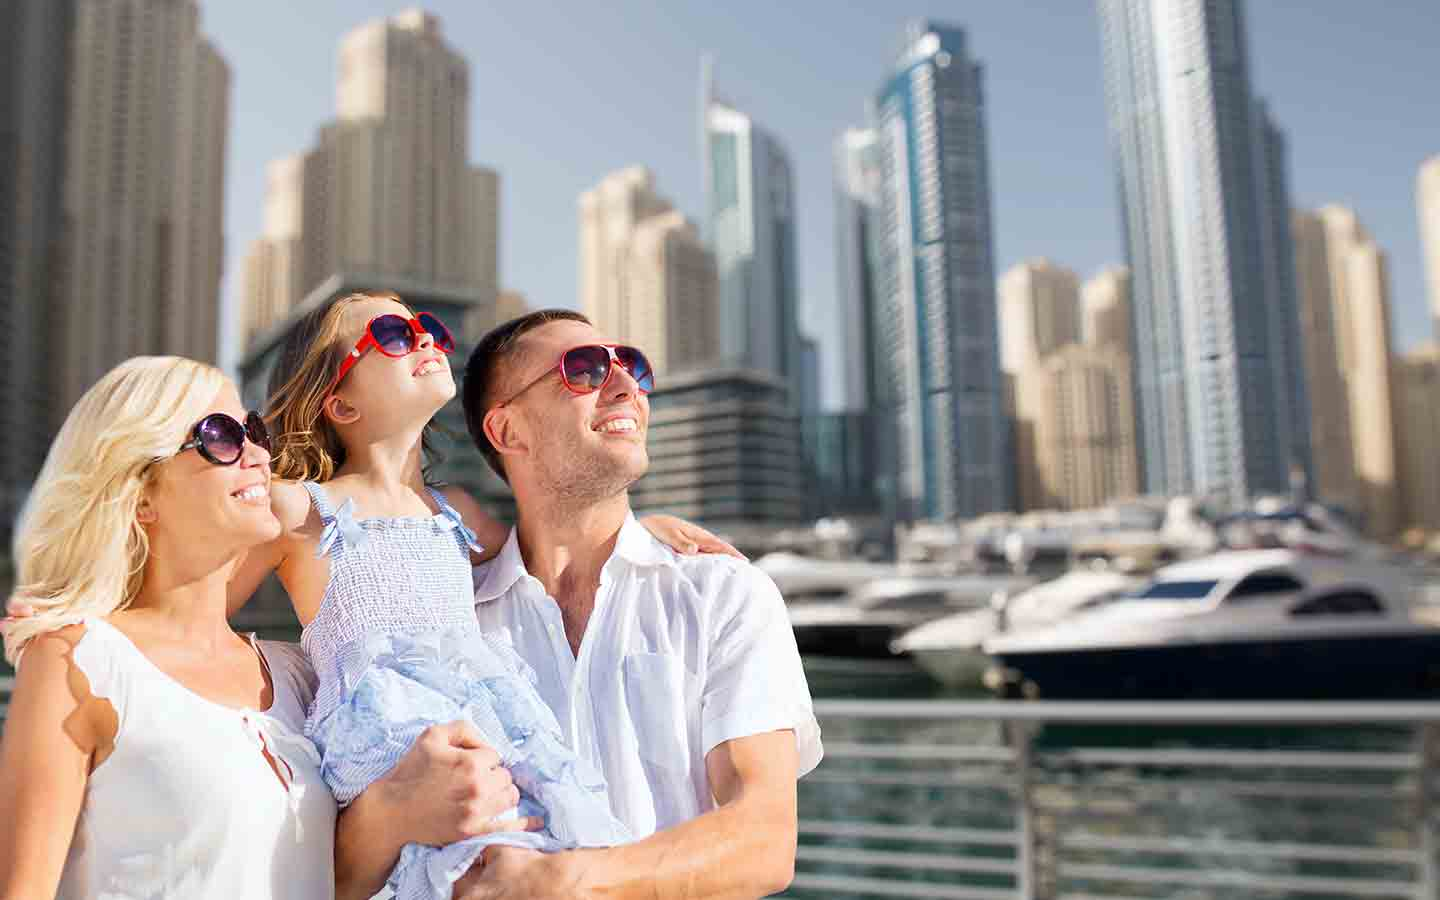 Families will have fun on a Dubai holiday